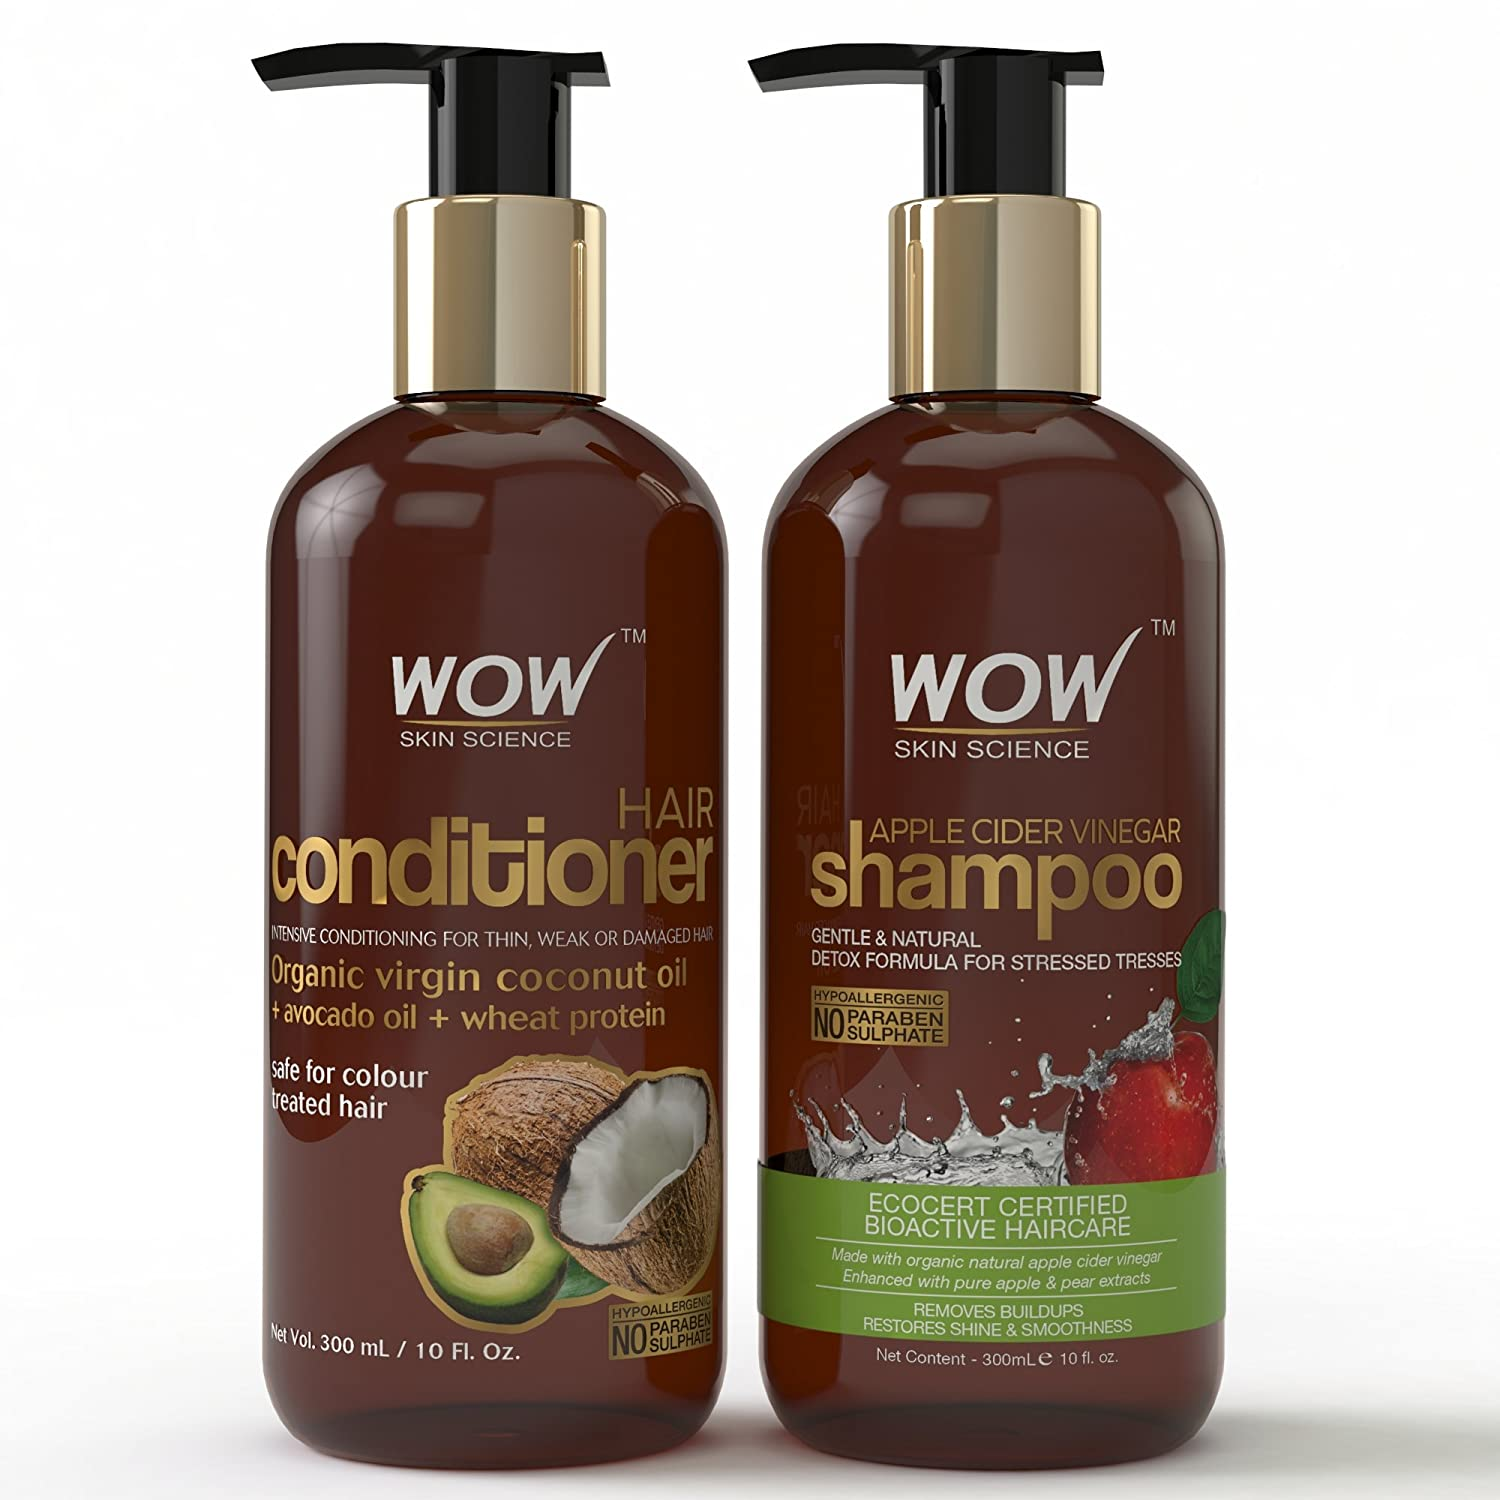 Wow Apple Cider Vinegar Hair Shampoo and Wow Hair Conditioner Set- Clarifying, Damage Repair, Antifungal, Anti Bacterial, Vegan- no Sulphate or Paraben Chemicals- For Men and Women (10 fl Ounces Each- 1 Pack Combo)